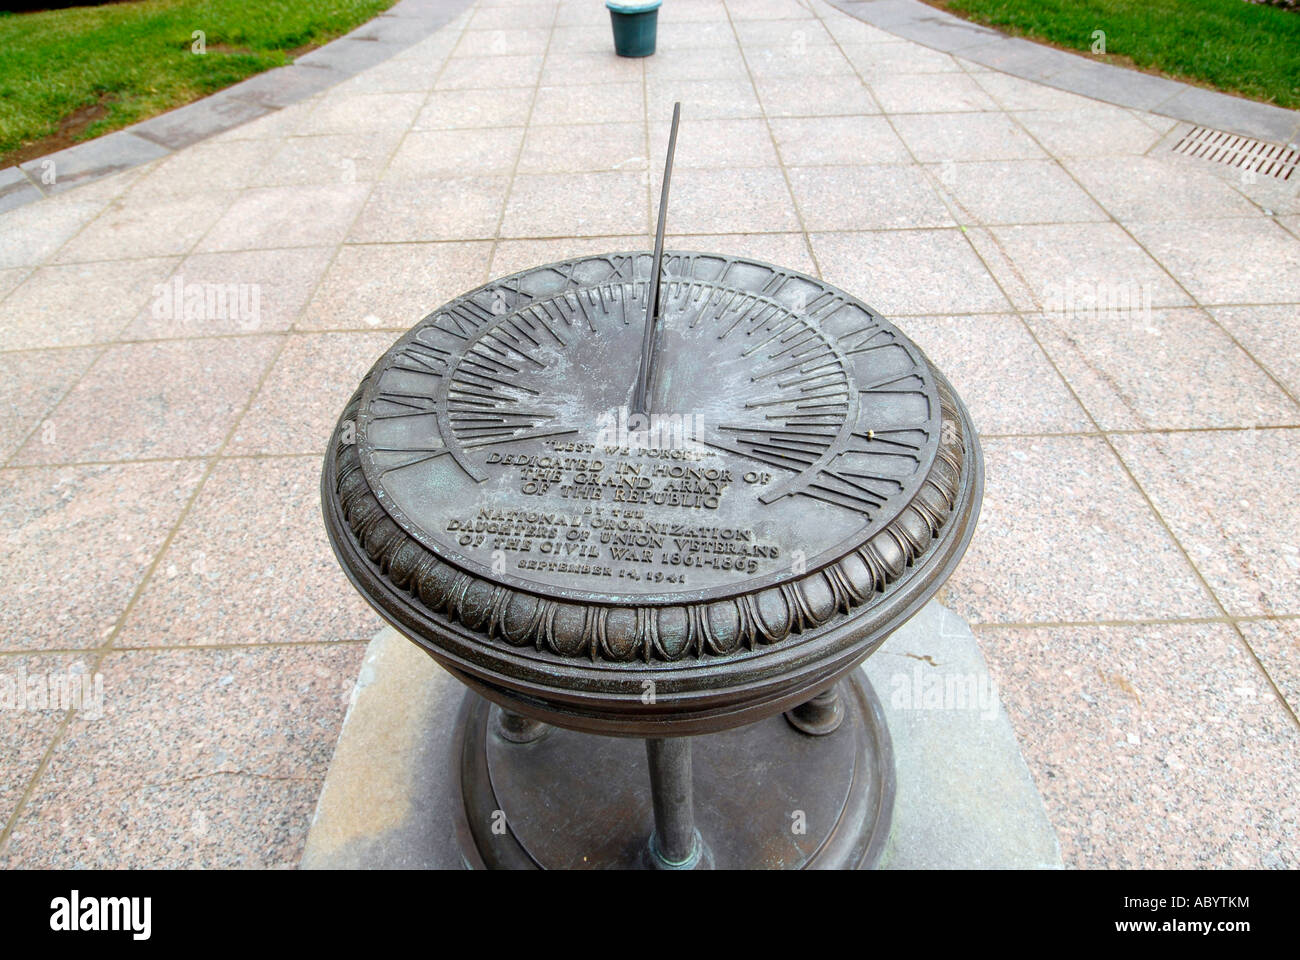 sundial on the grounds of the Ohio State Capitol at Columbus OH - Stock Image